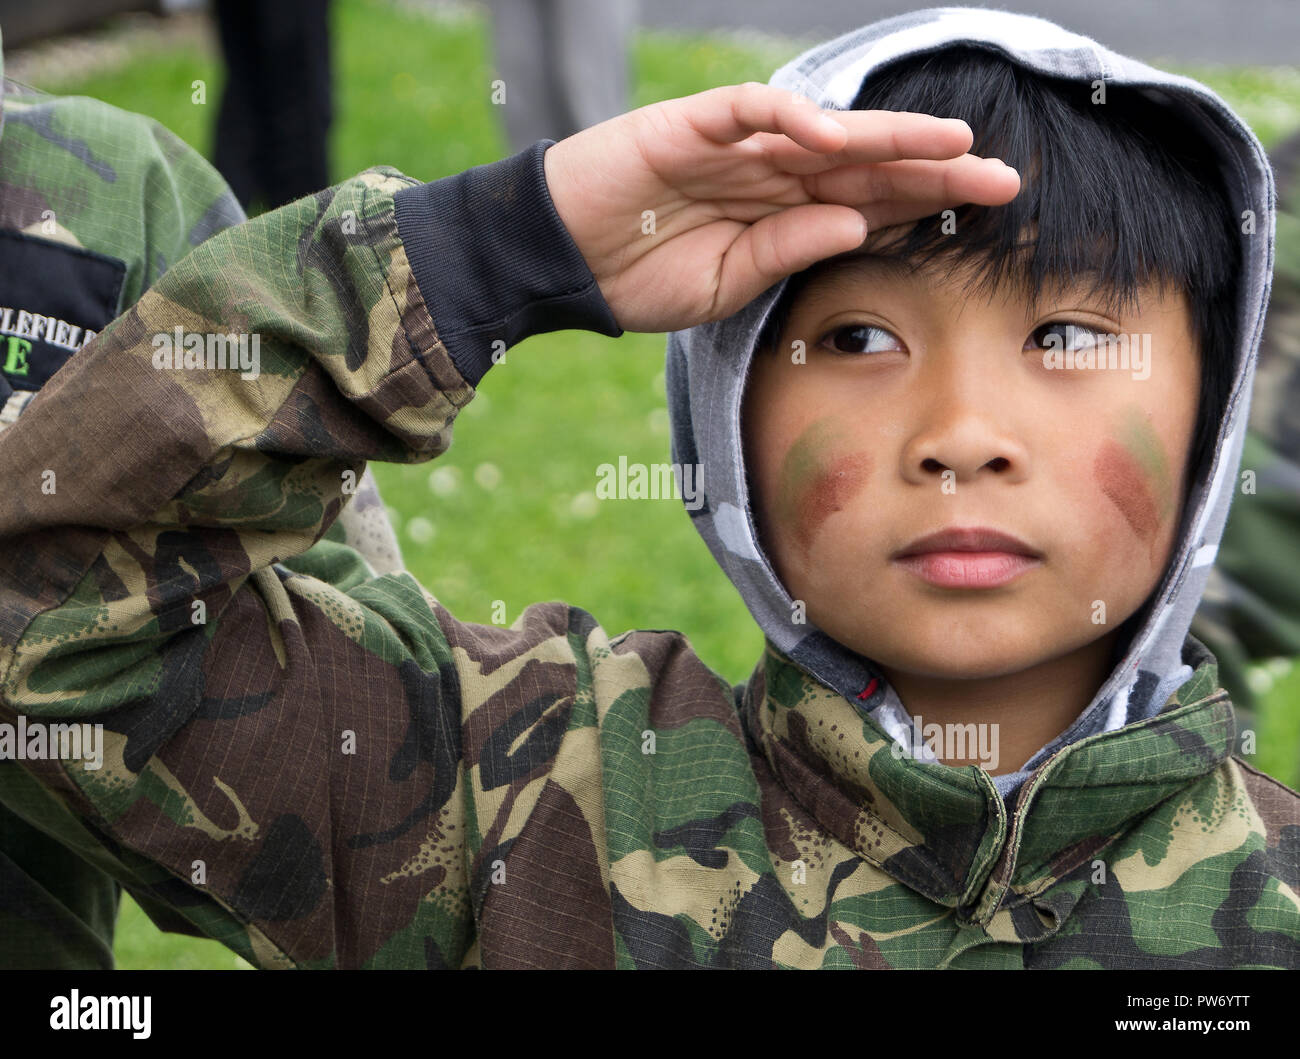 Close up photo of Asian Boy saluting in camouflage uniform. - Stock Image